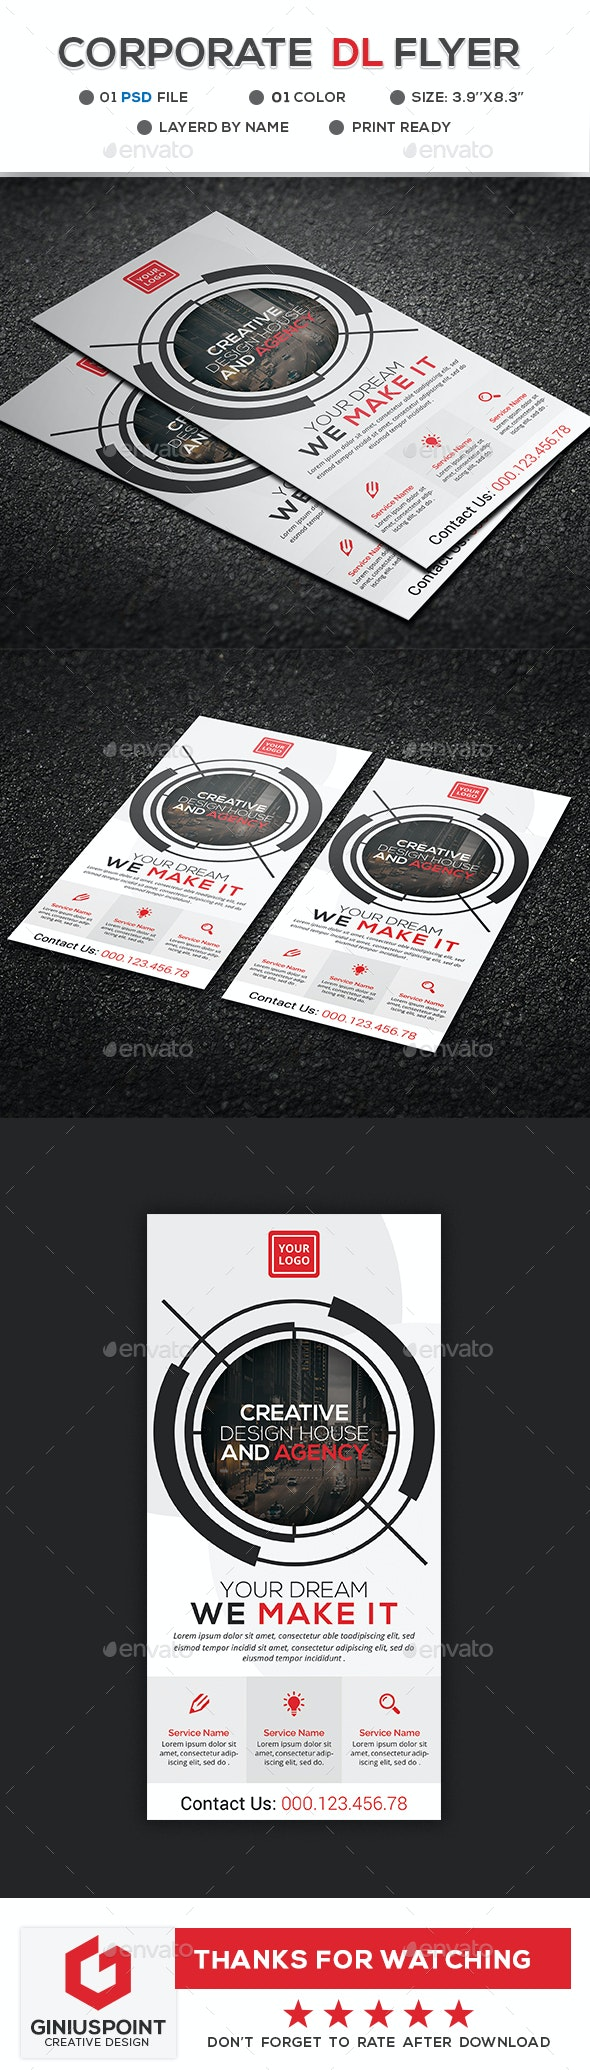 Corporate DL Flyer Template - Flyers Print Templates